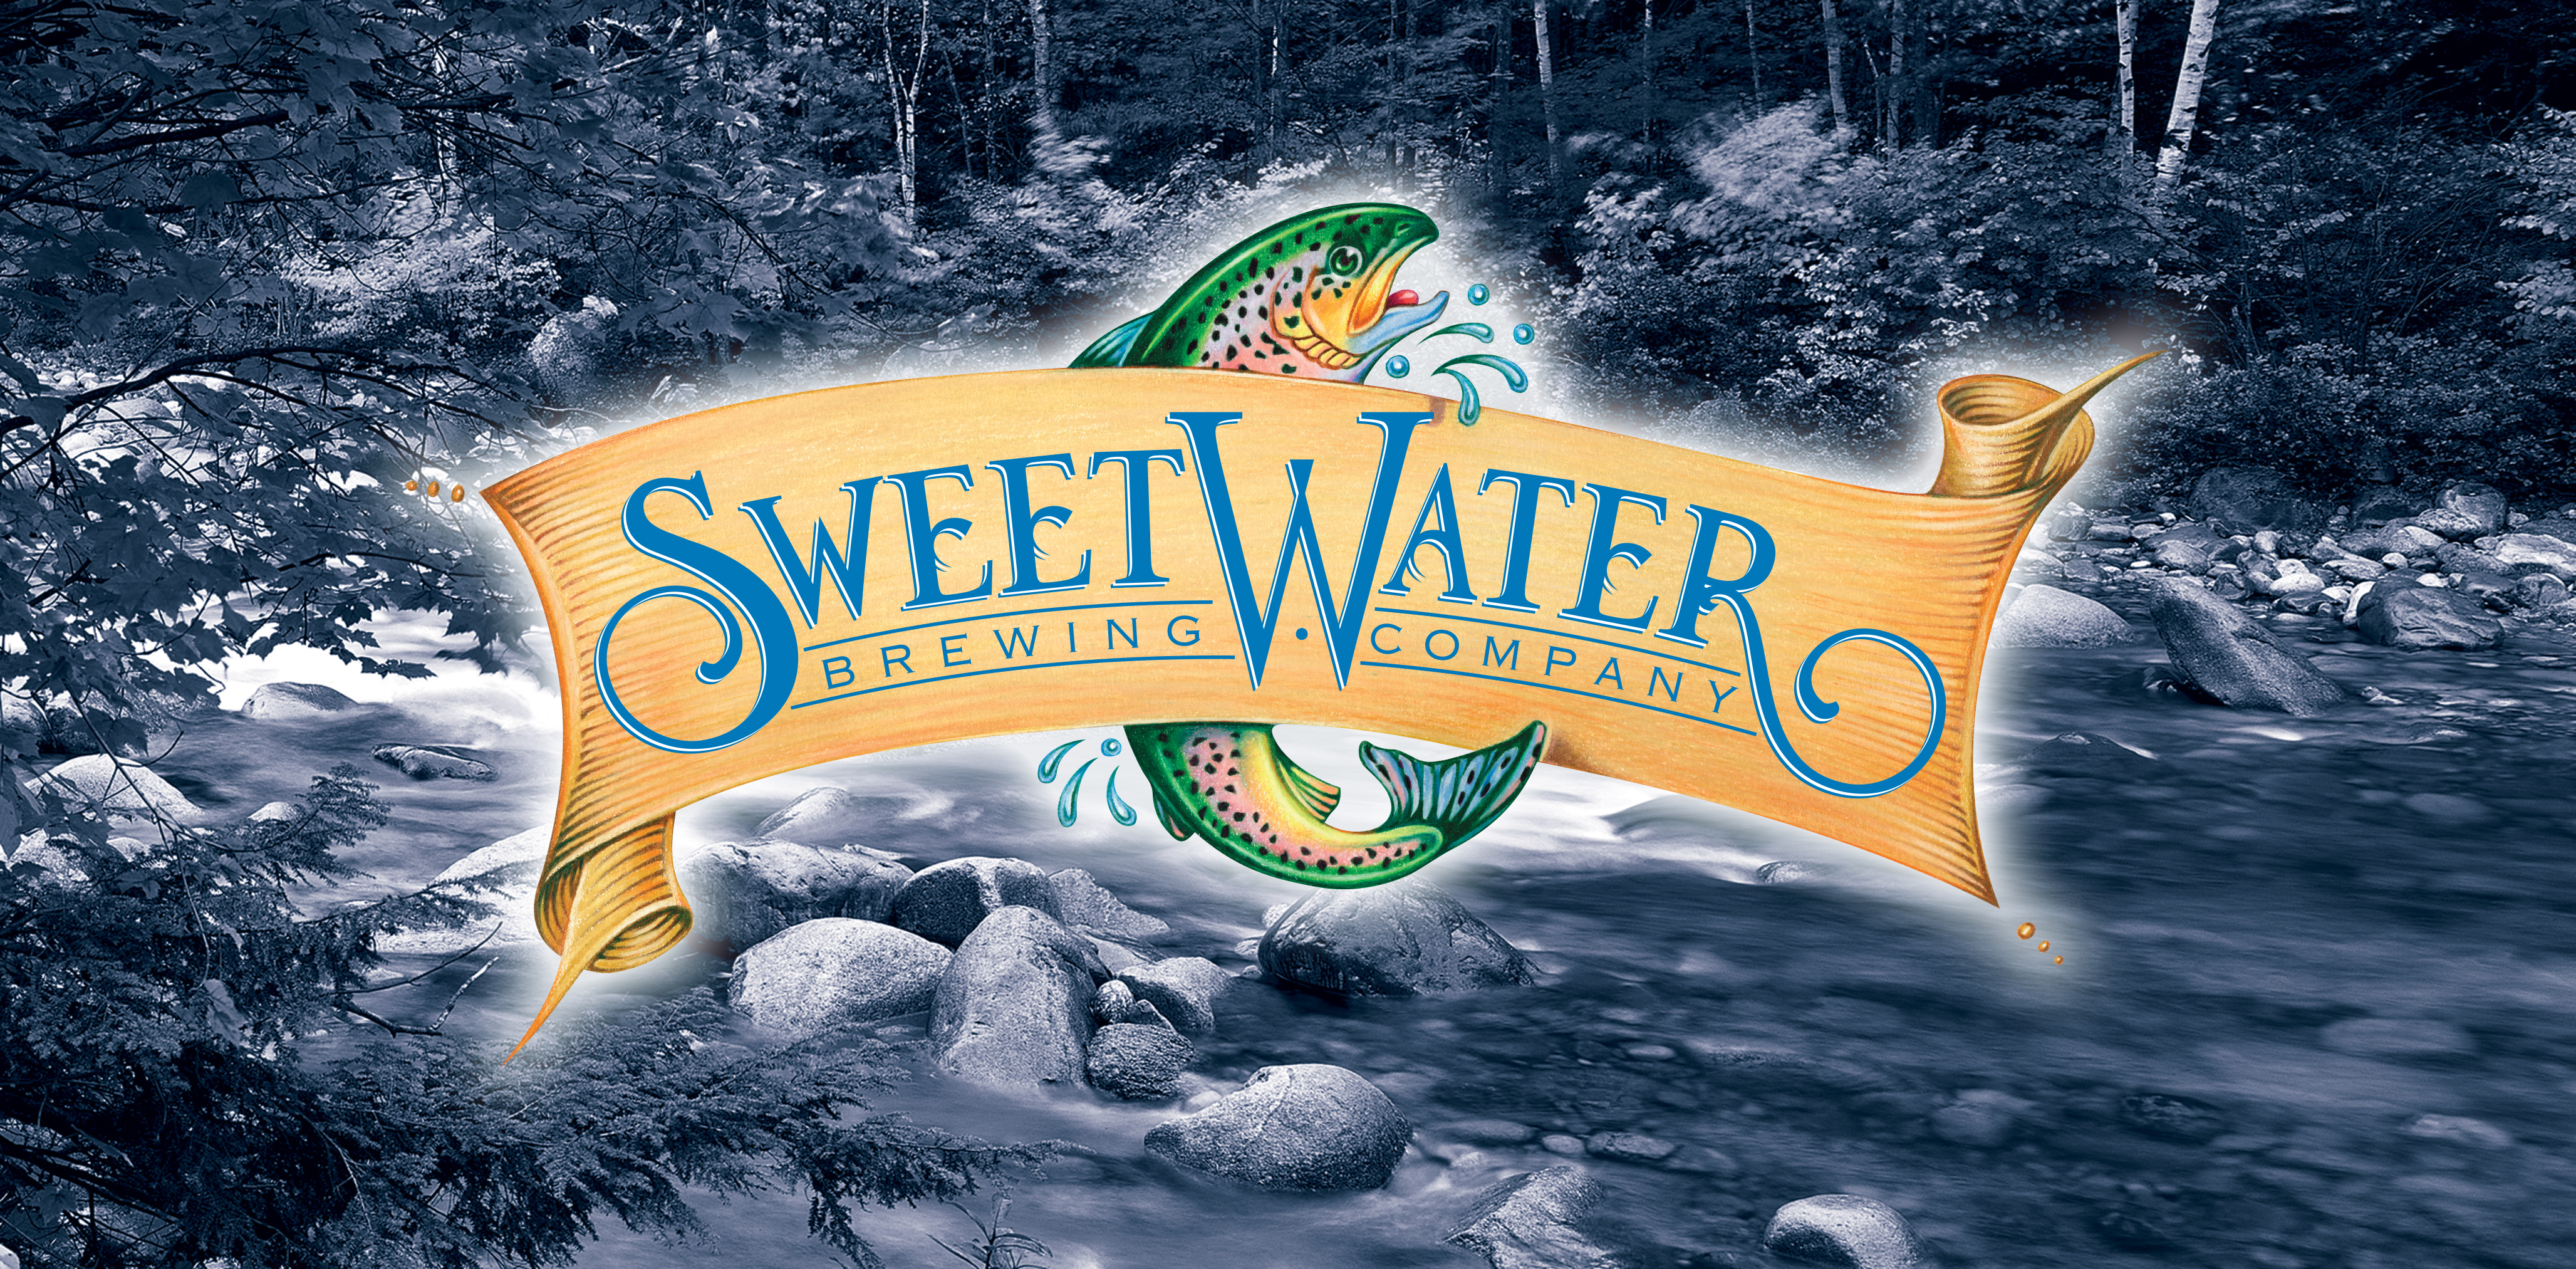 Sweetwater brewery to host fundraiser for Livable Buckhead ...